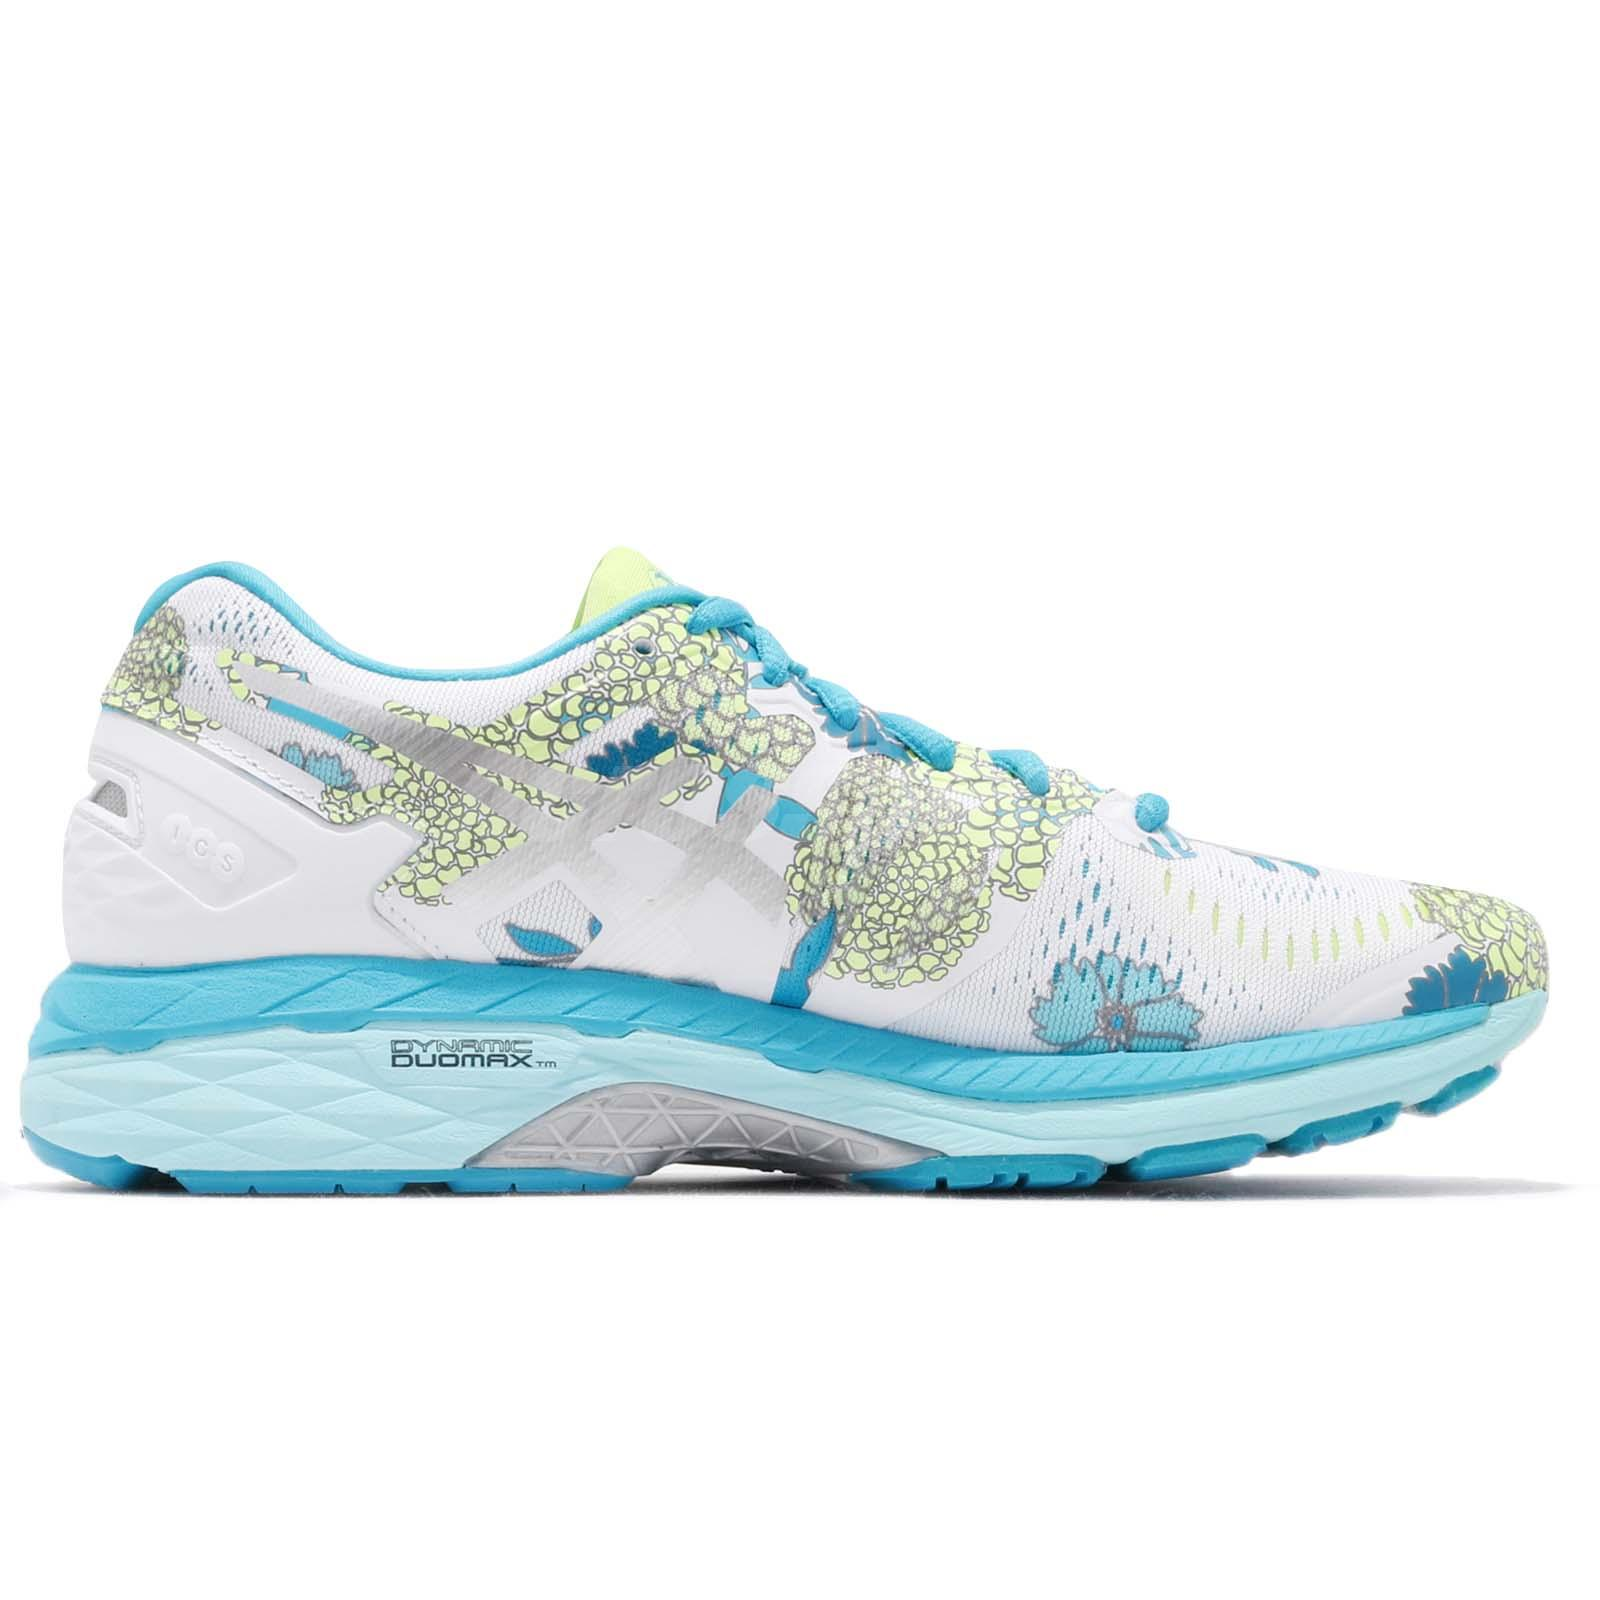 5145a09b60 Asics Gel-Kayano 23 White Silver Blue Floral Women Running Shoes ...